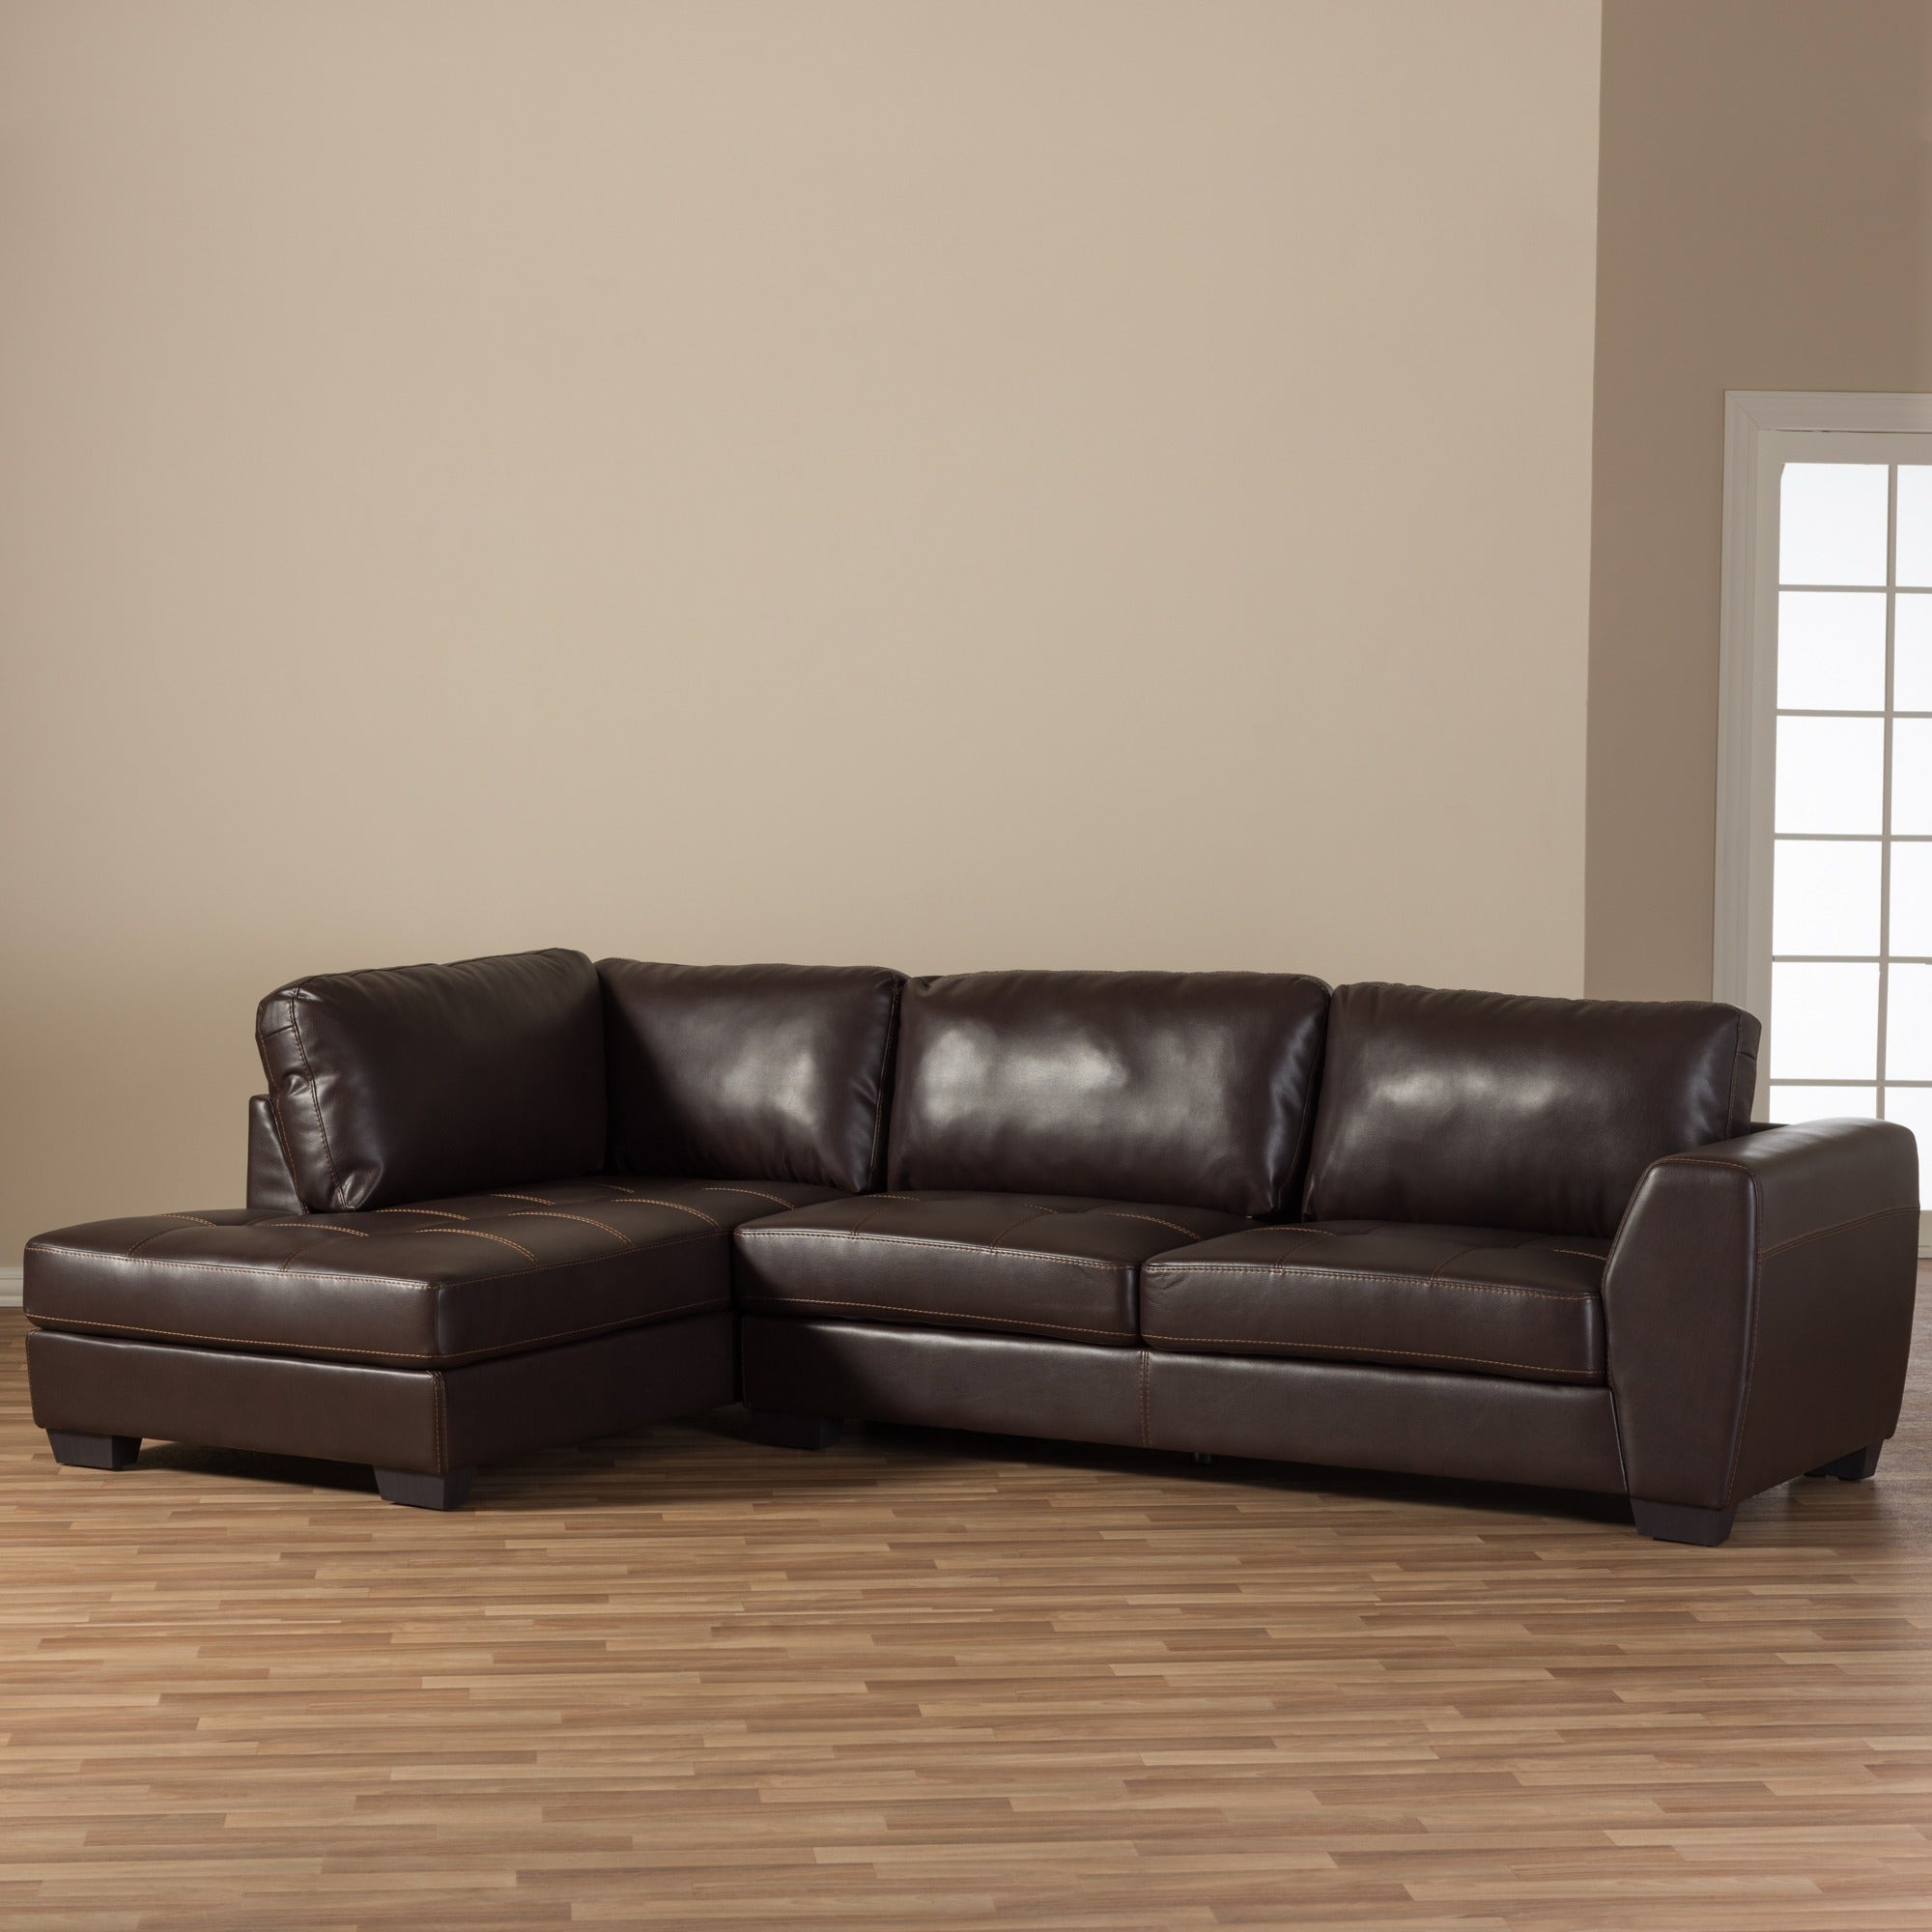 facing content chaise jinllingsly marjen or gray right sectional arm piece left